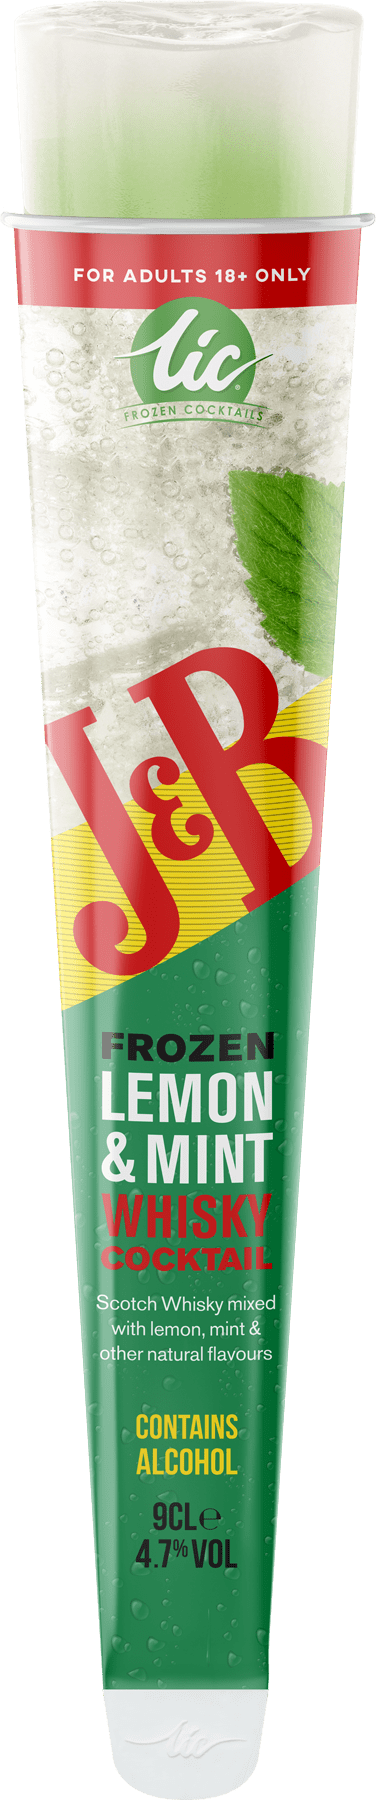 J&B: Lemon & Mint